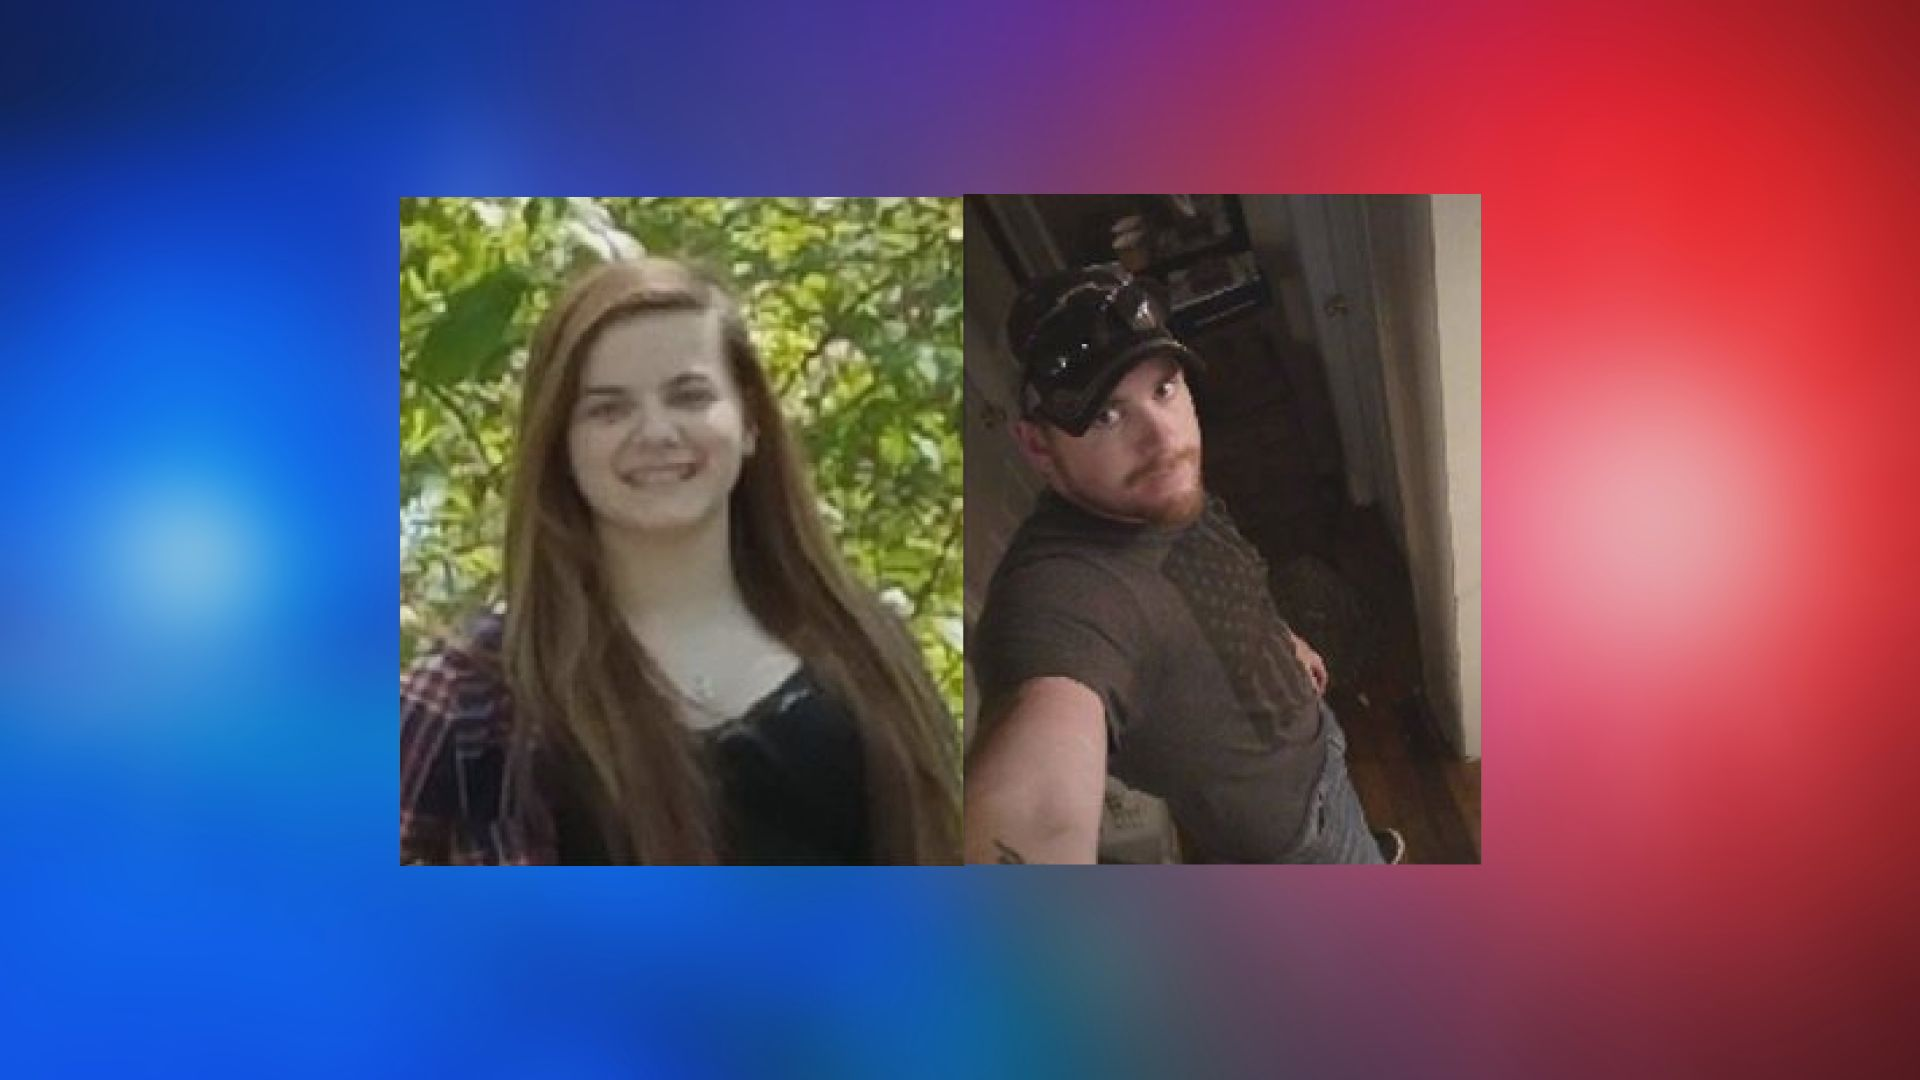 Anyone who sees them or knows their whereabouts is urged to contact the emergency communications center at 615 862 8600 or crime stoppers at 615 742 7463